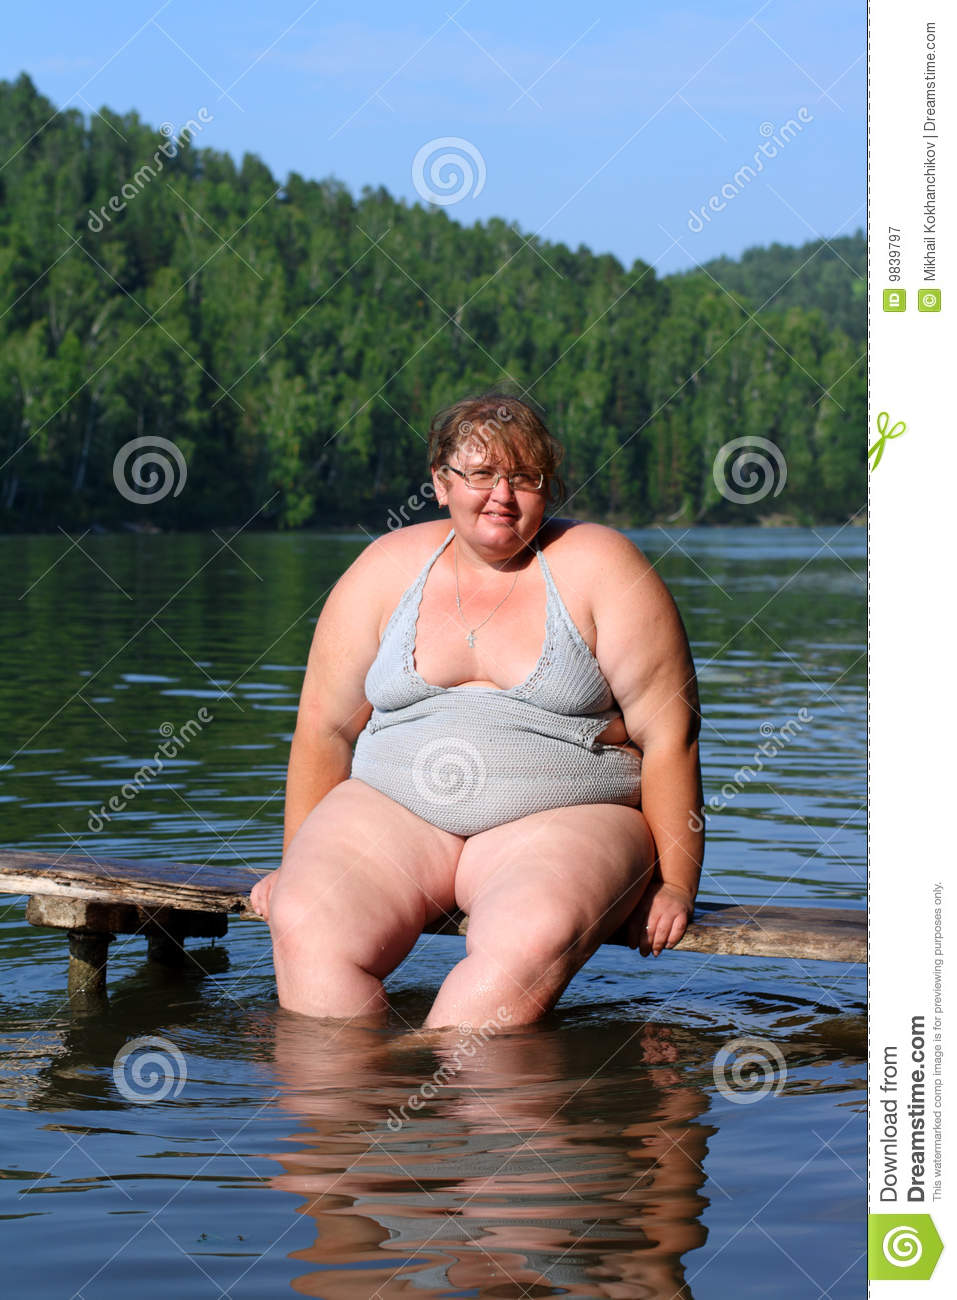 Overweight woman sitting on stage